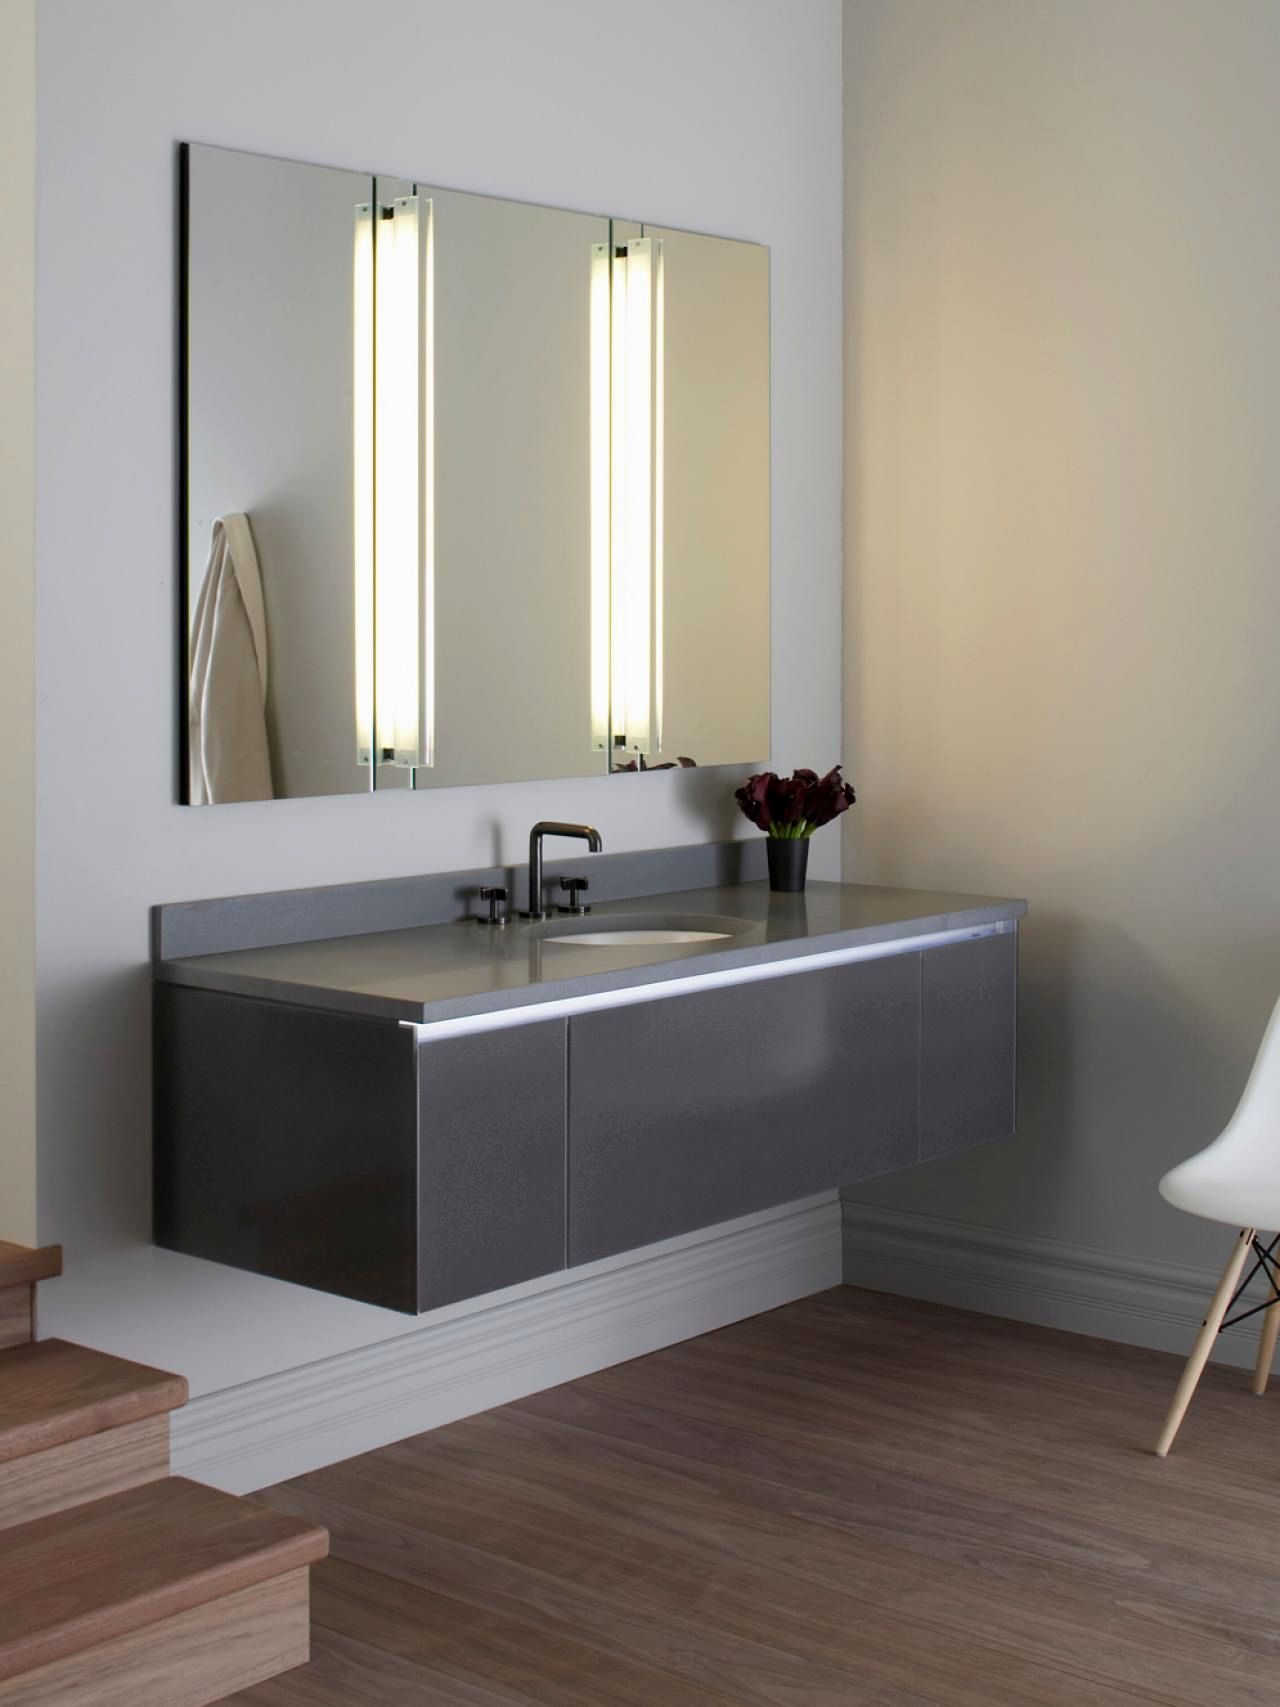 best of tall bathroom storage layout-Cool Tall Bathroom Storage Online